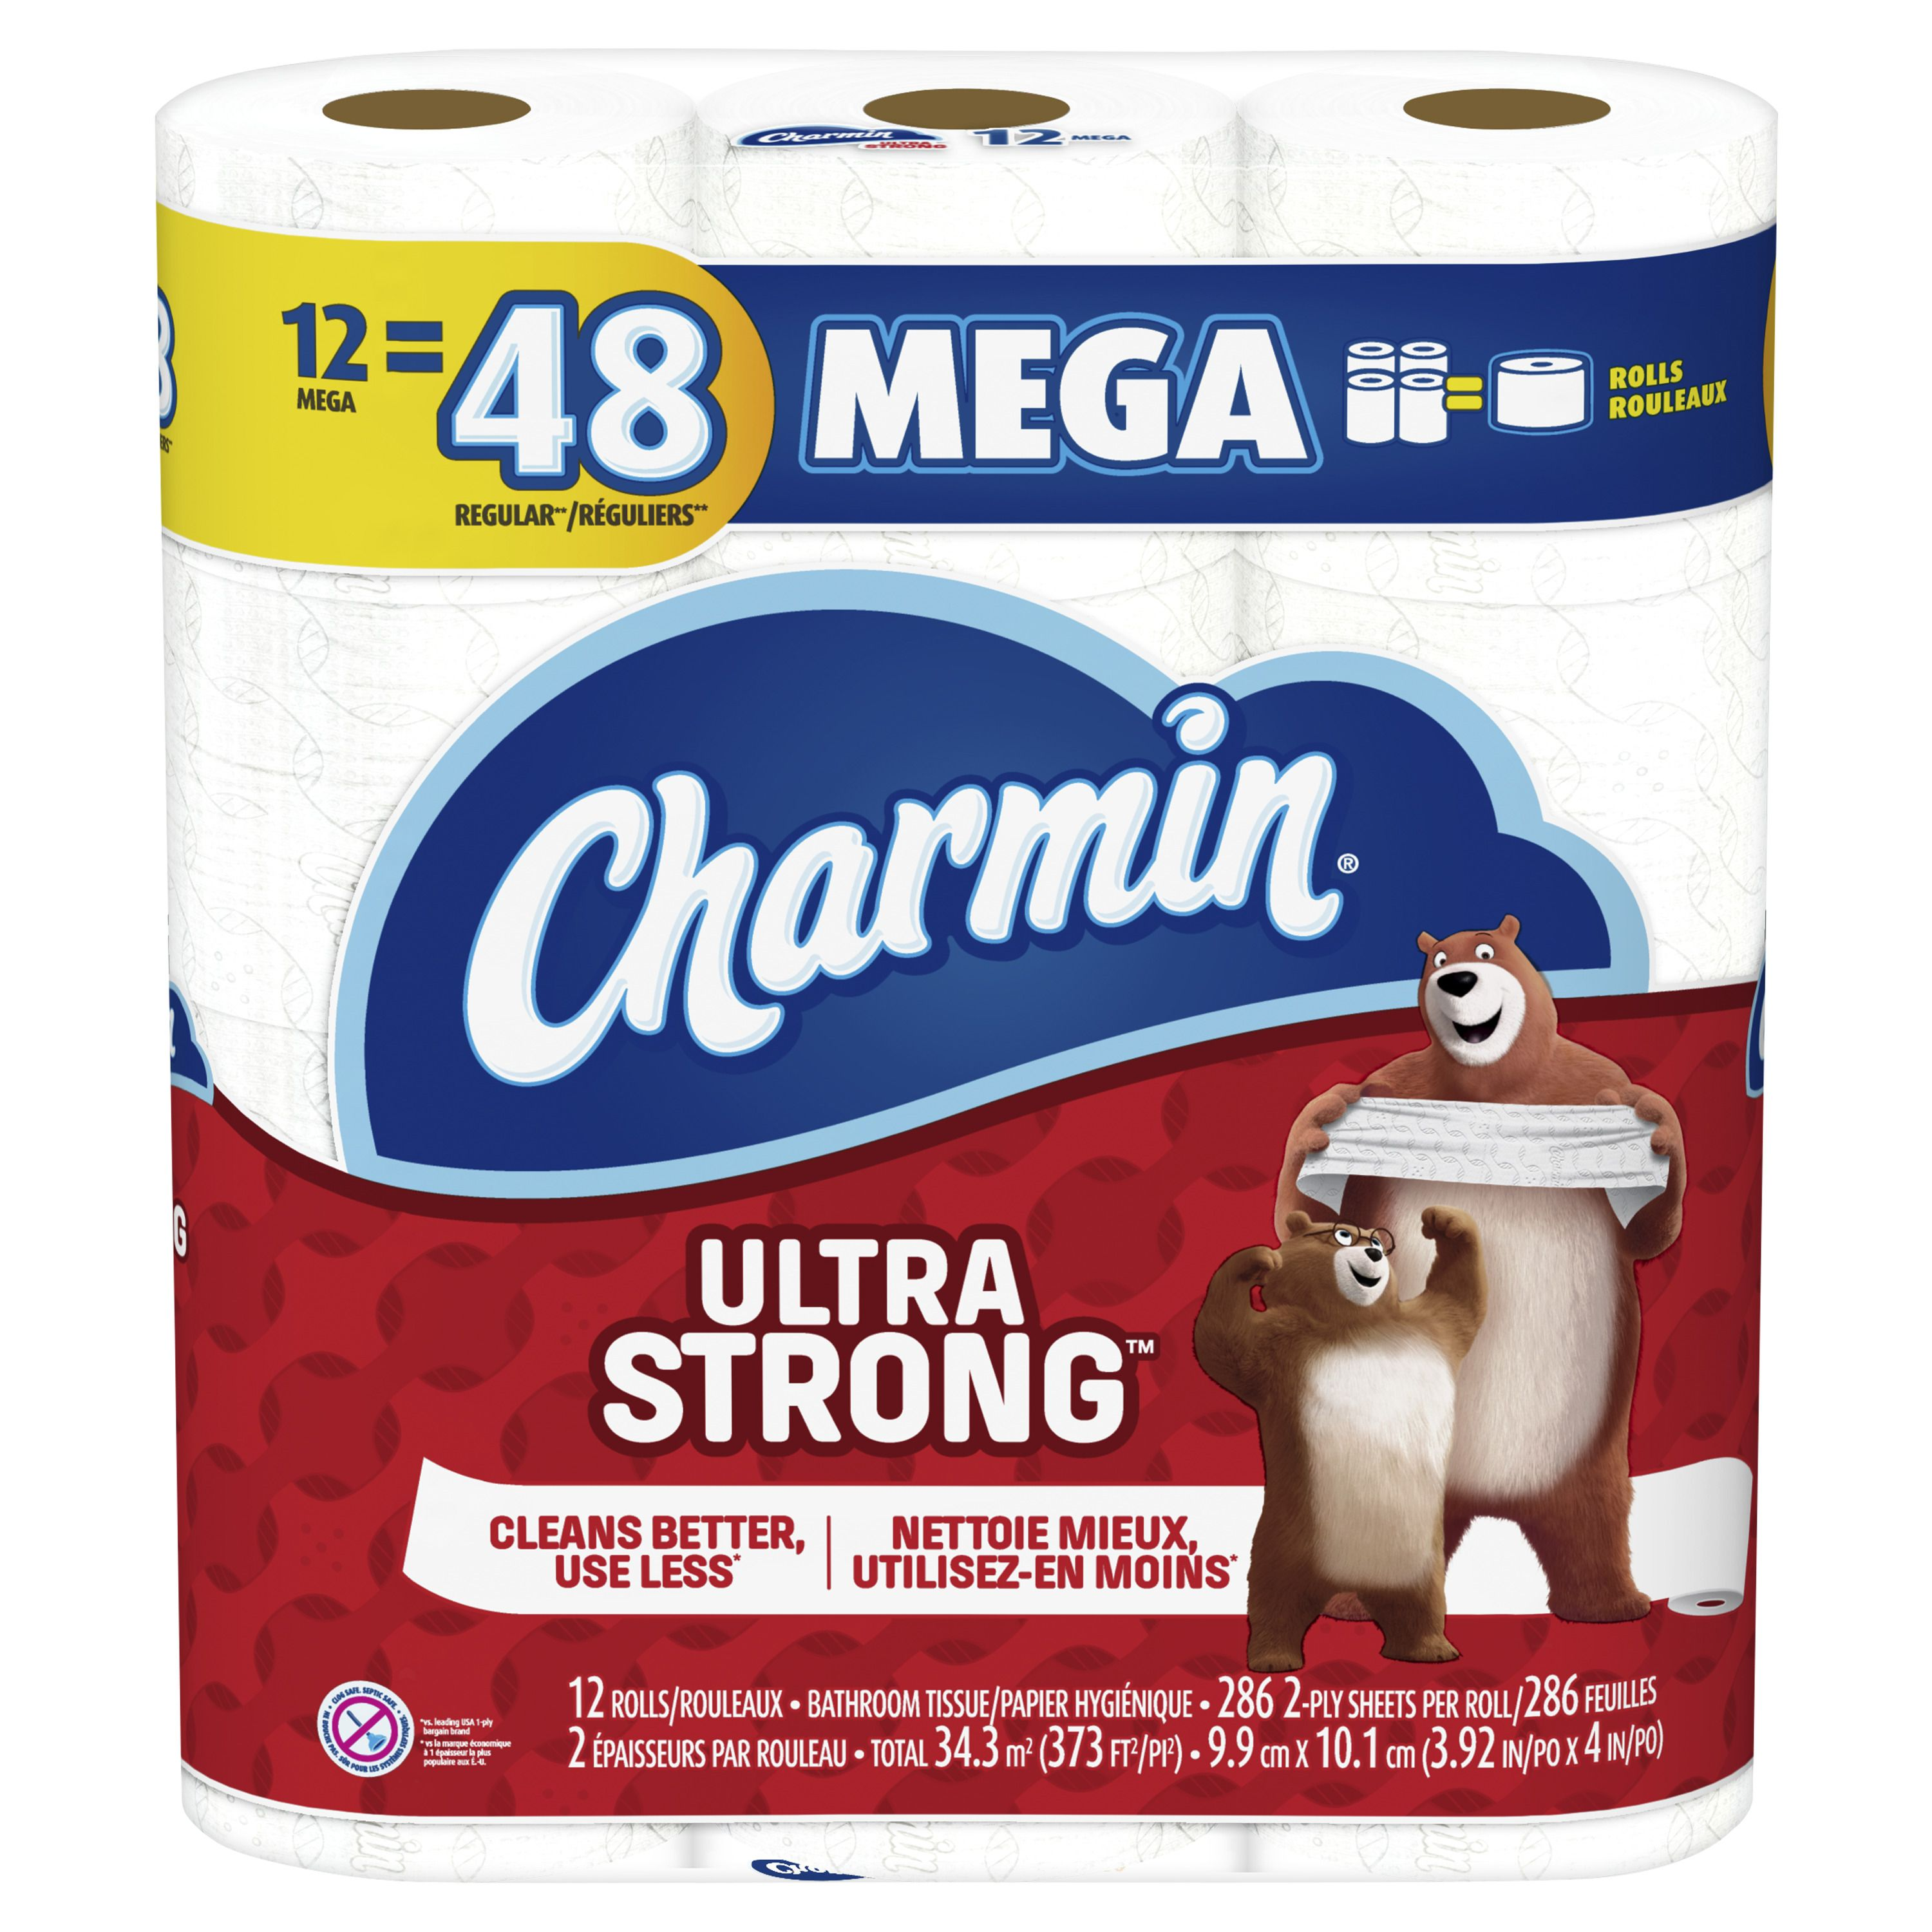 Charmin Ultra Strong Toilet Pape 12 Mega Rolls Ad Strong Affiliate Toilet Charmin Best Toilet Paper Towel Storage Washing Clothes